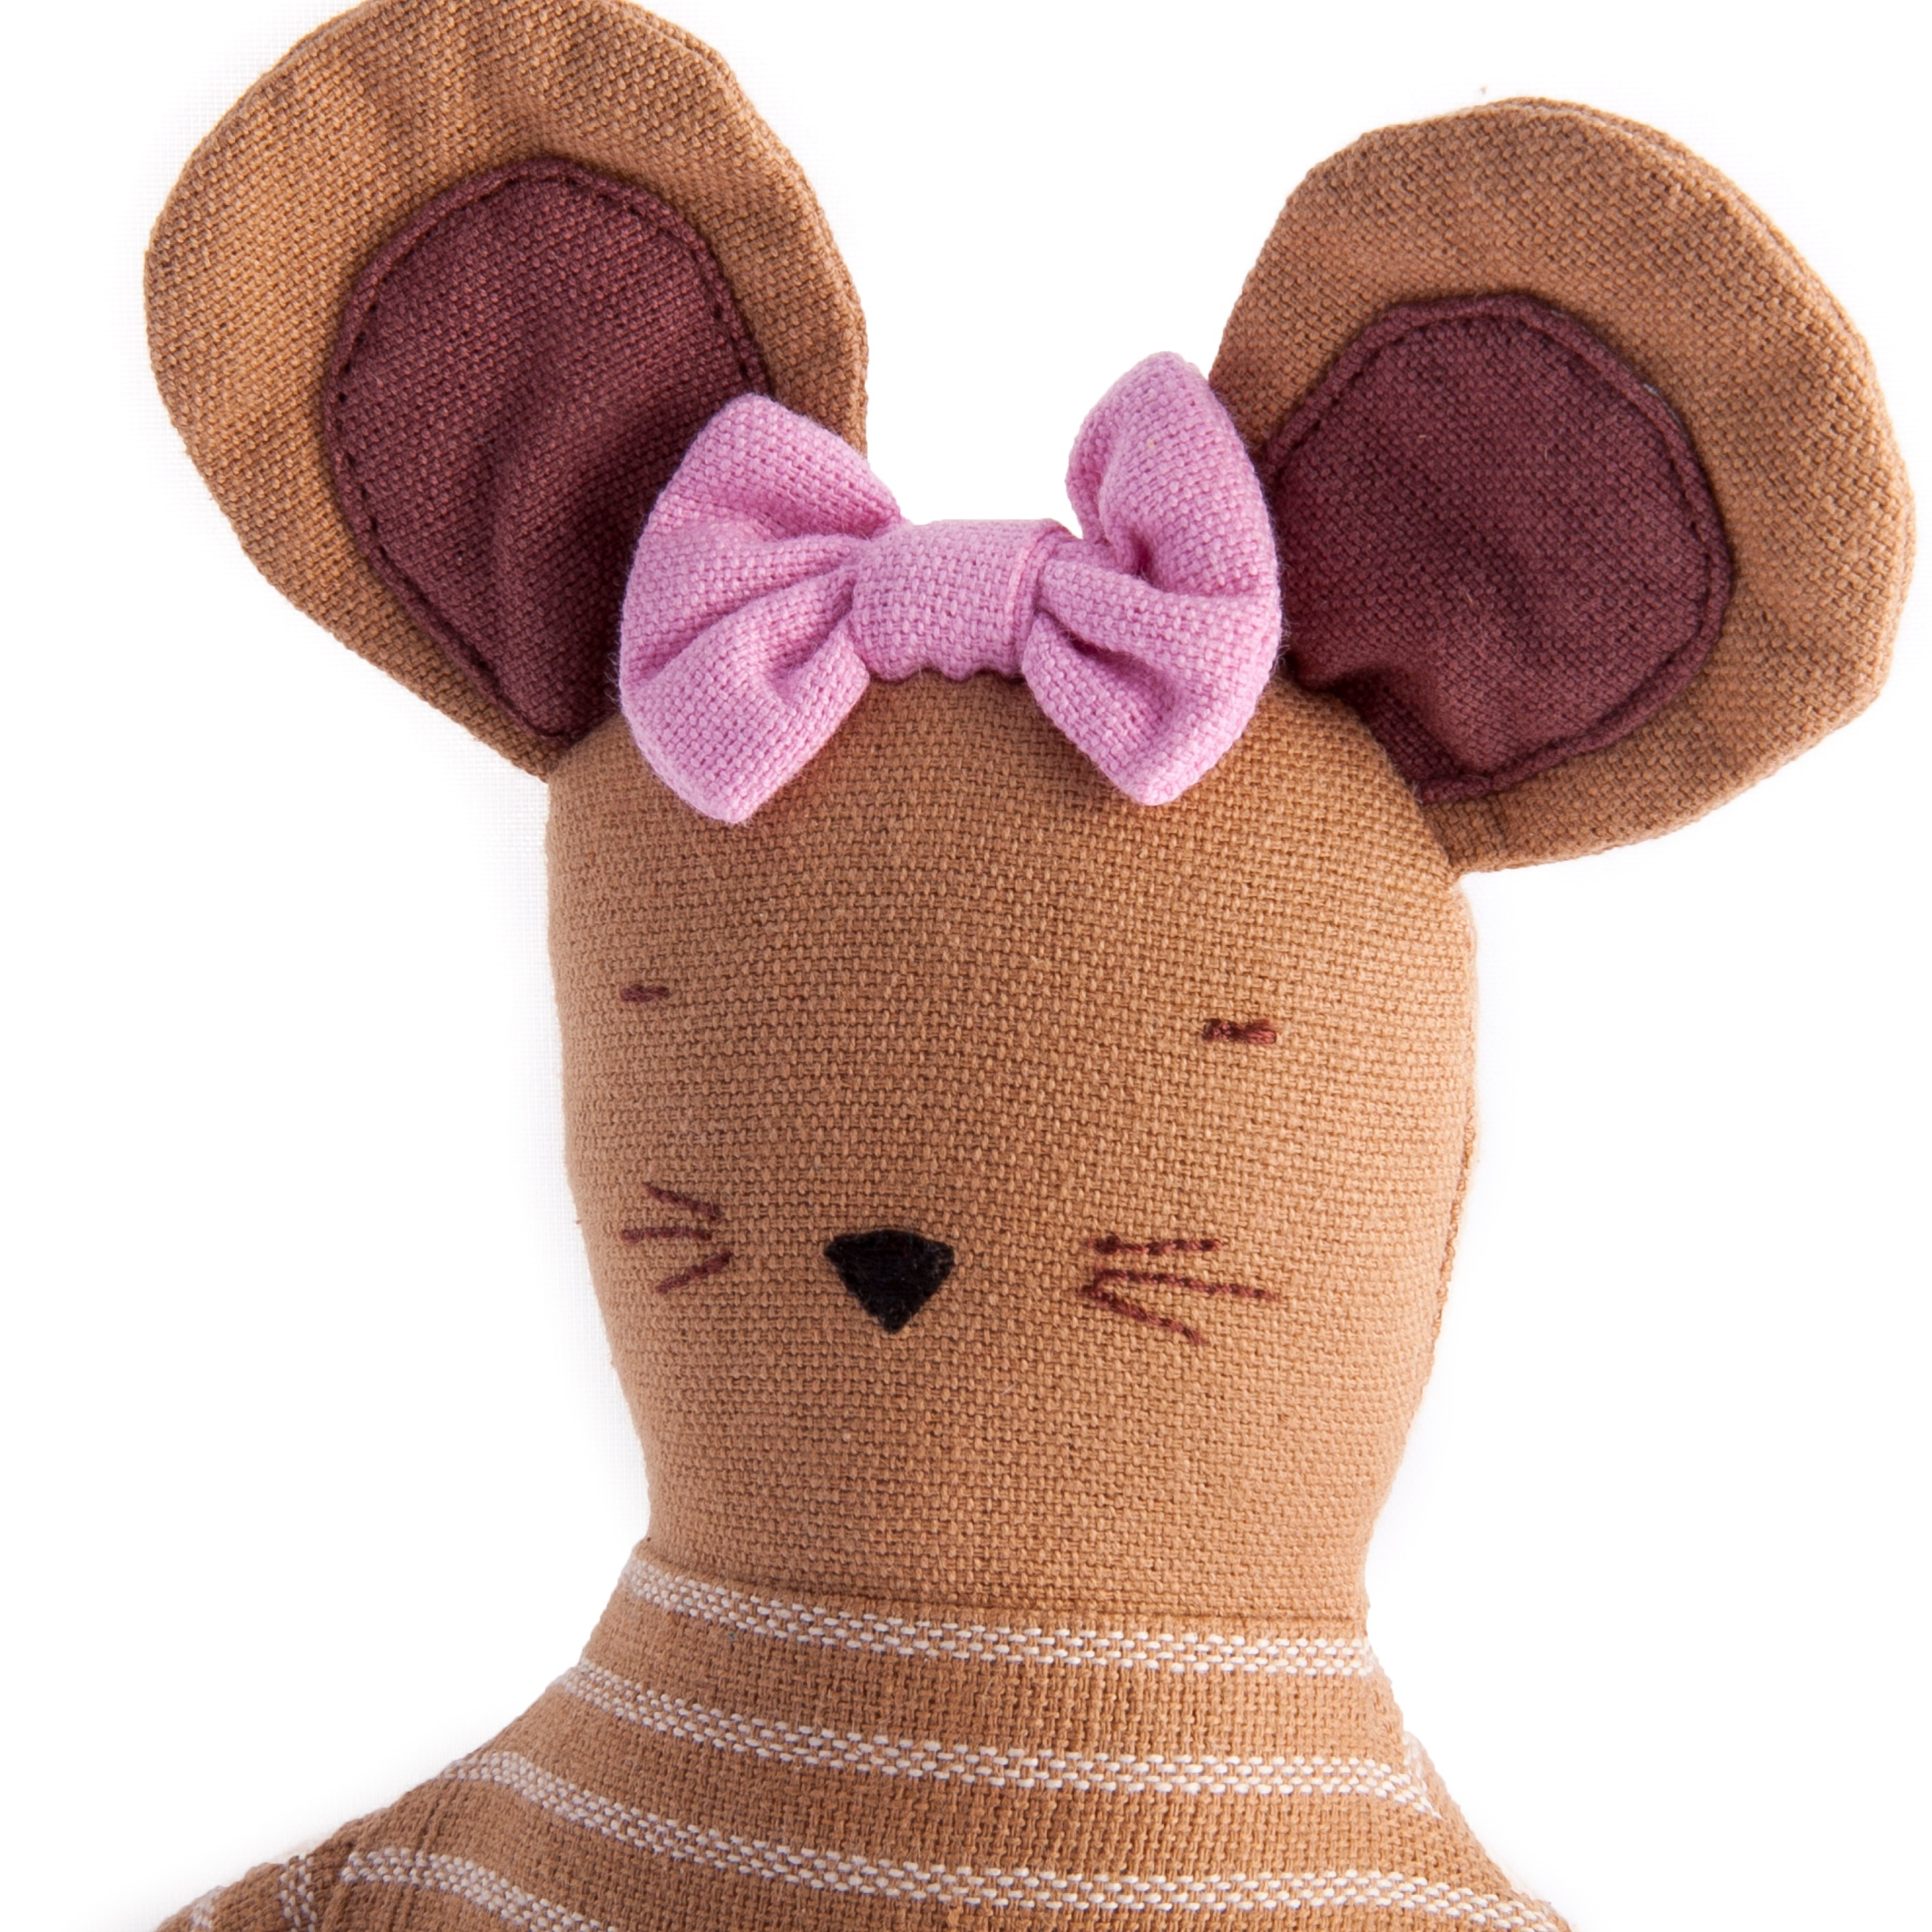 Hazel The Mouse Fair Trade Toy